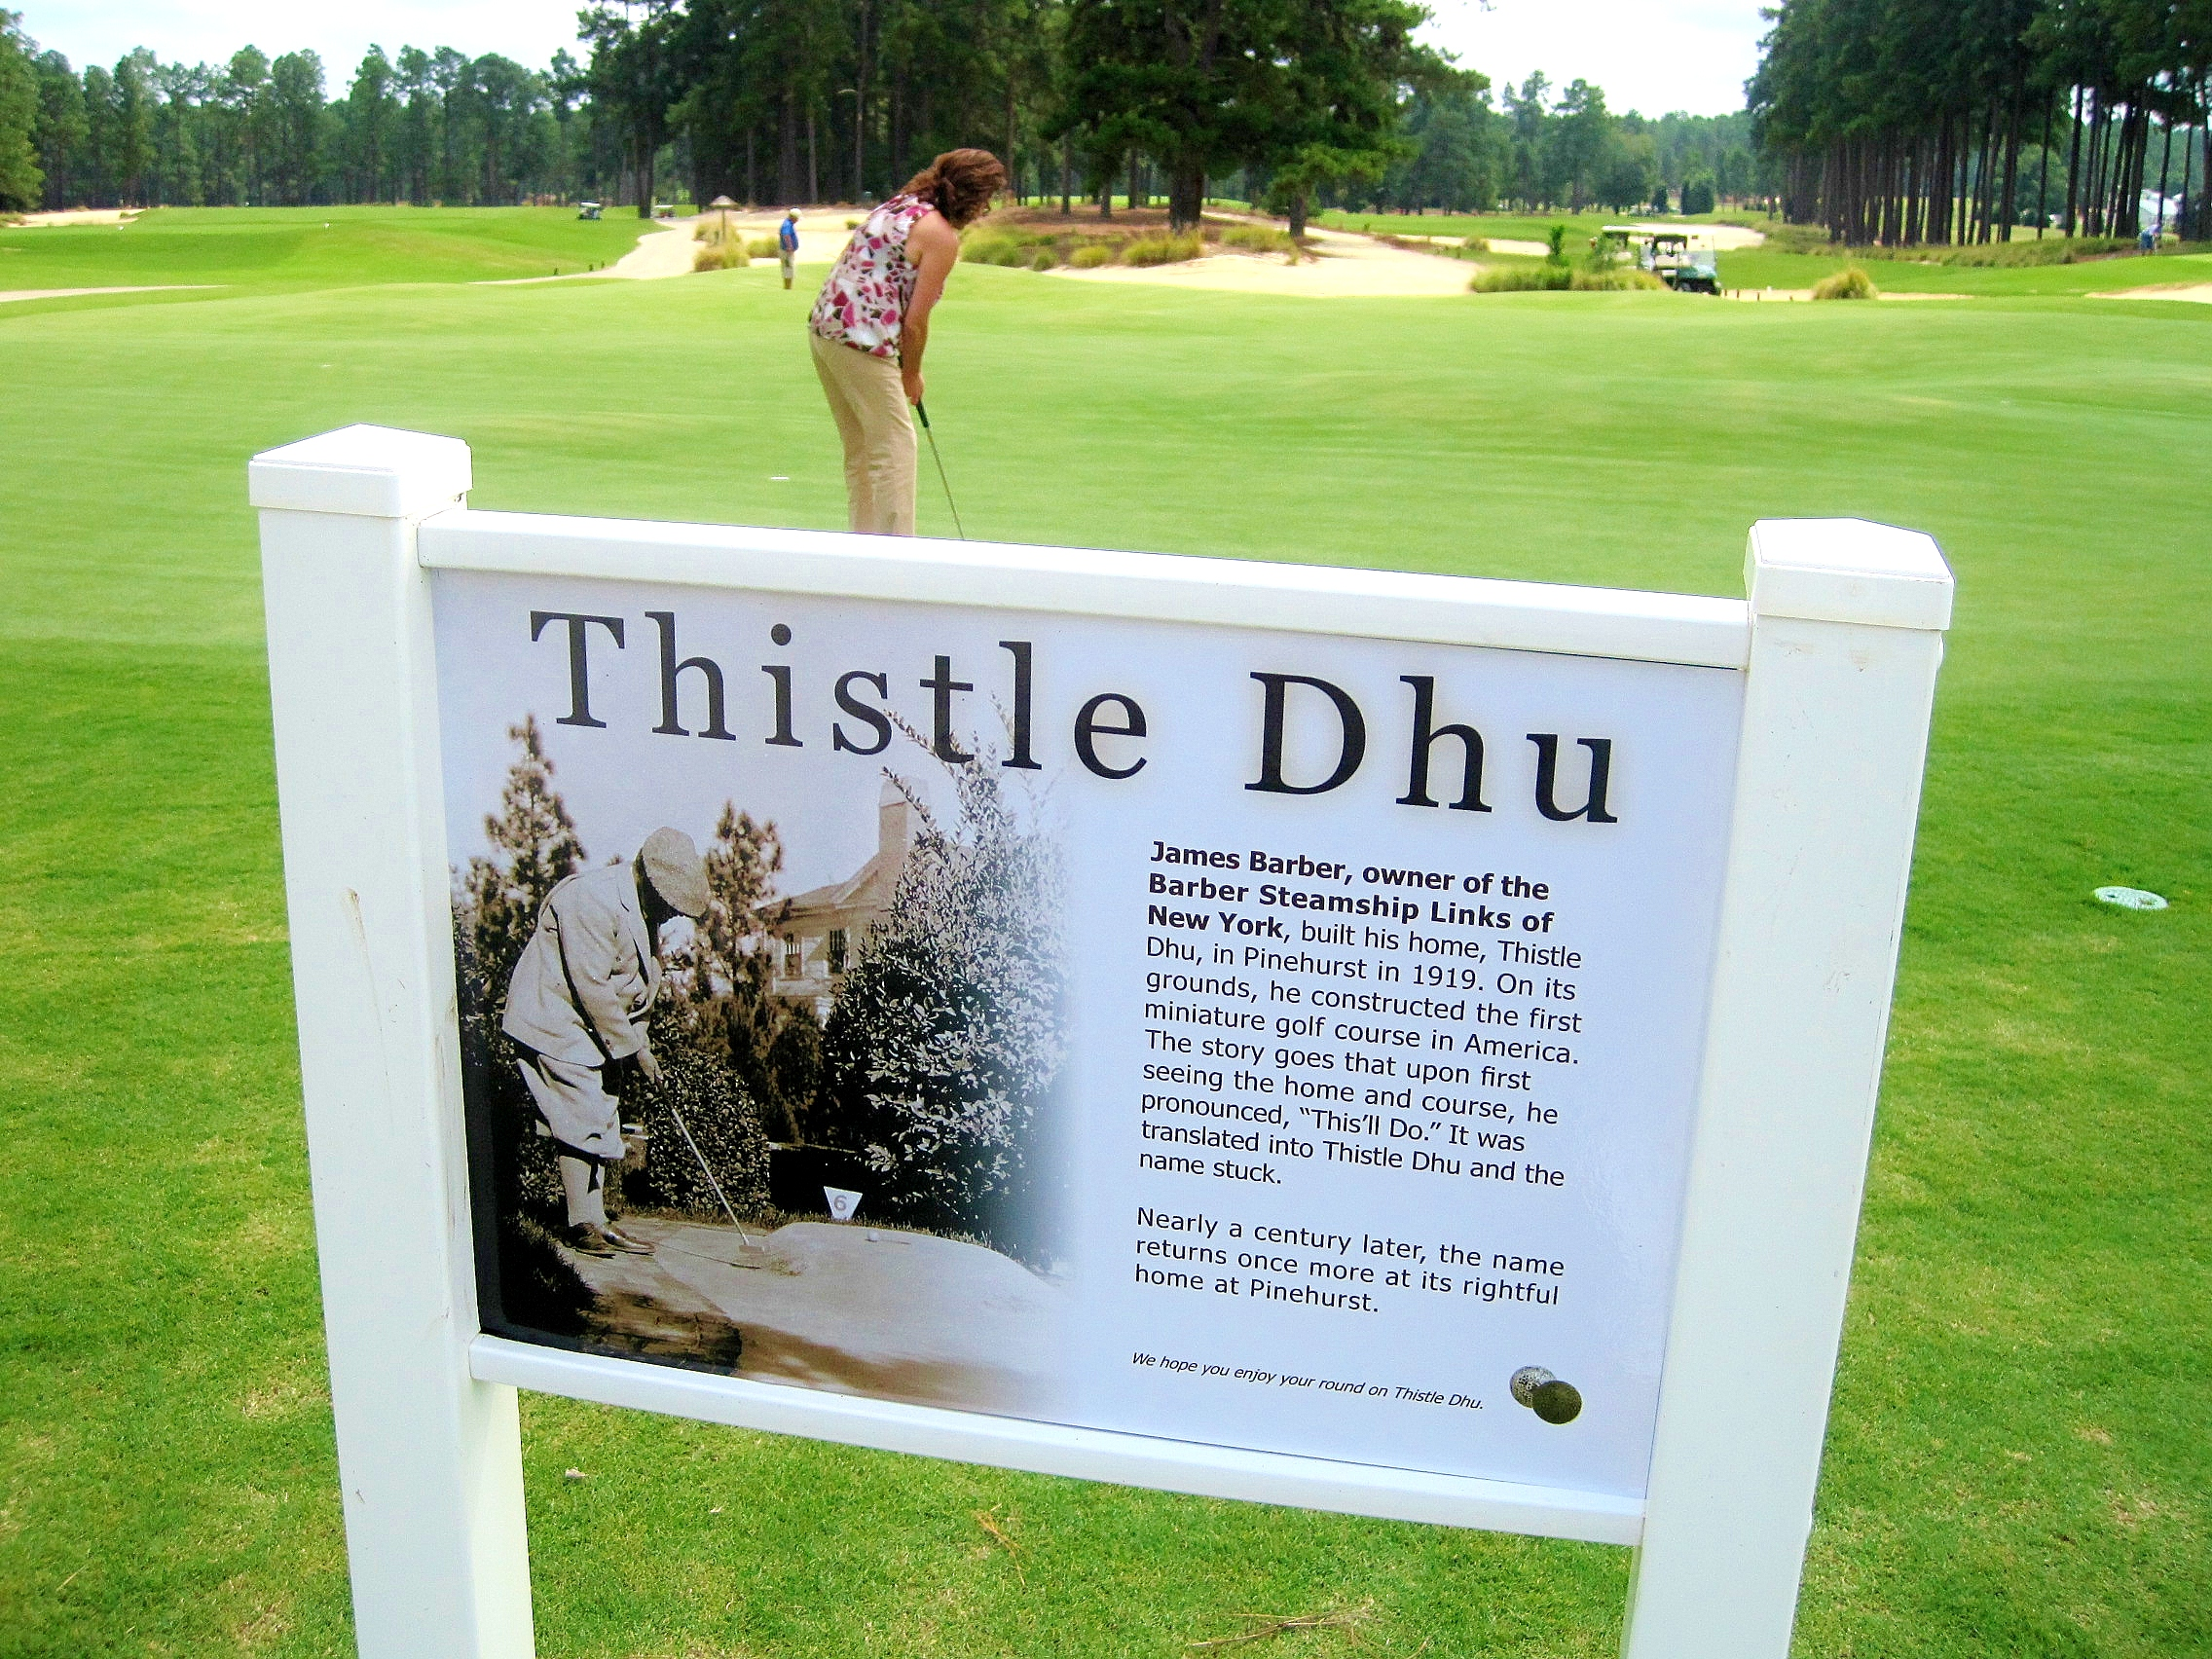 Thistle Dhu at Pinehurst